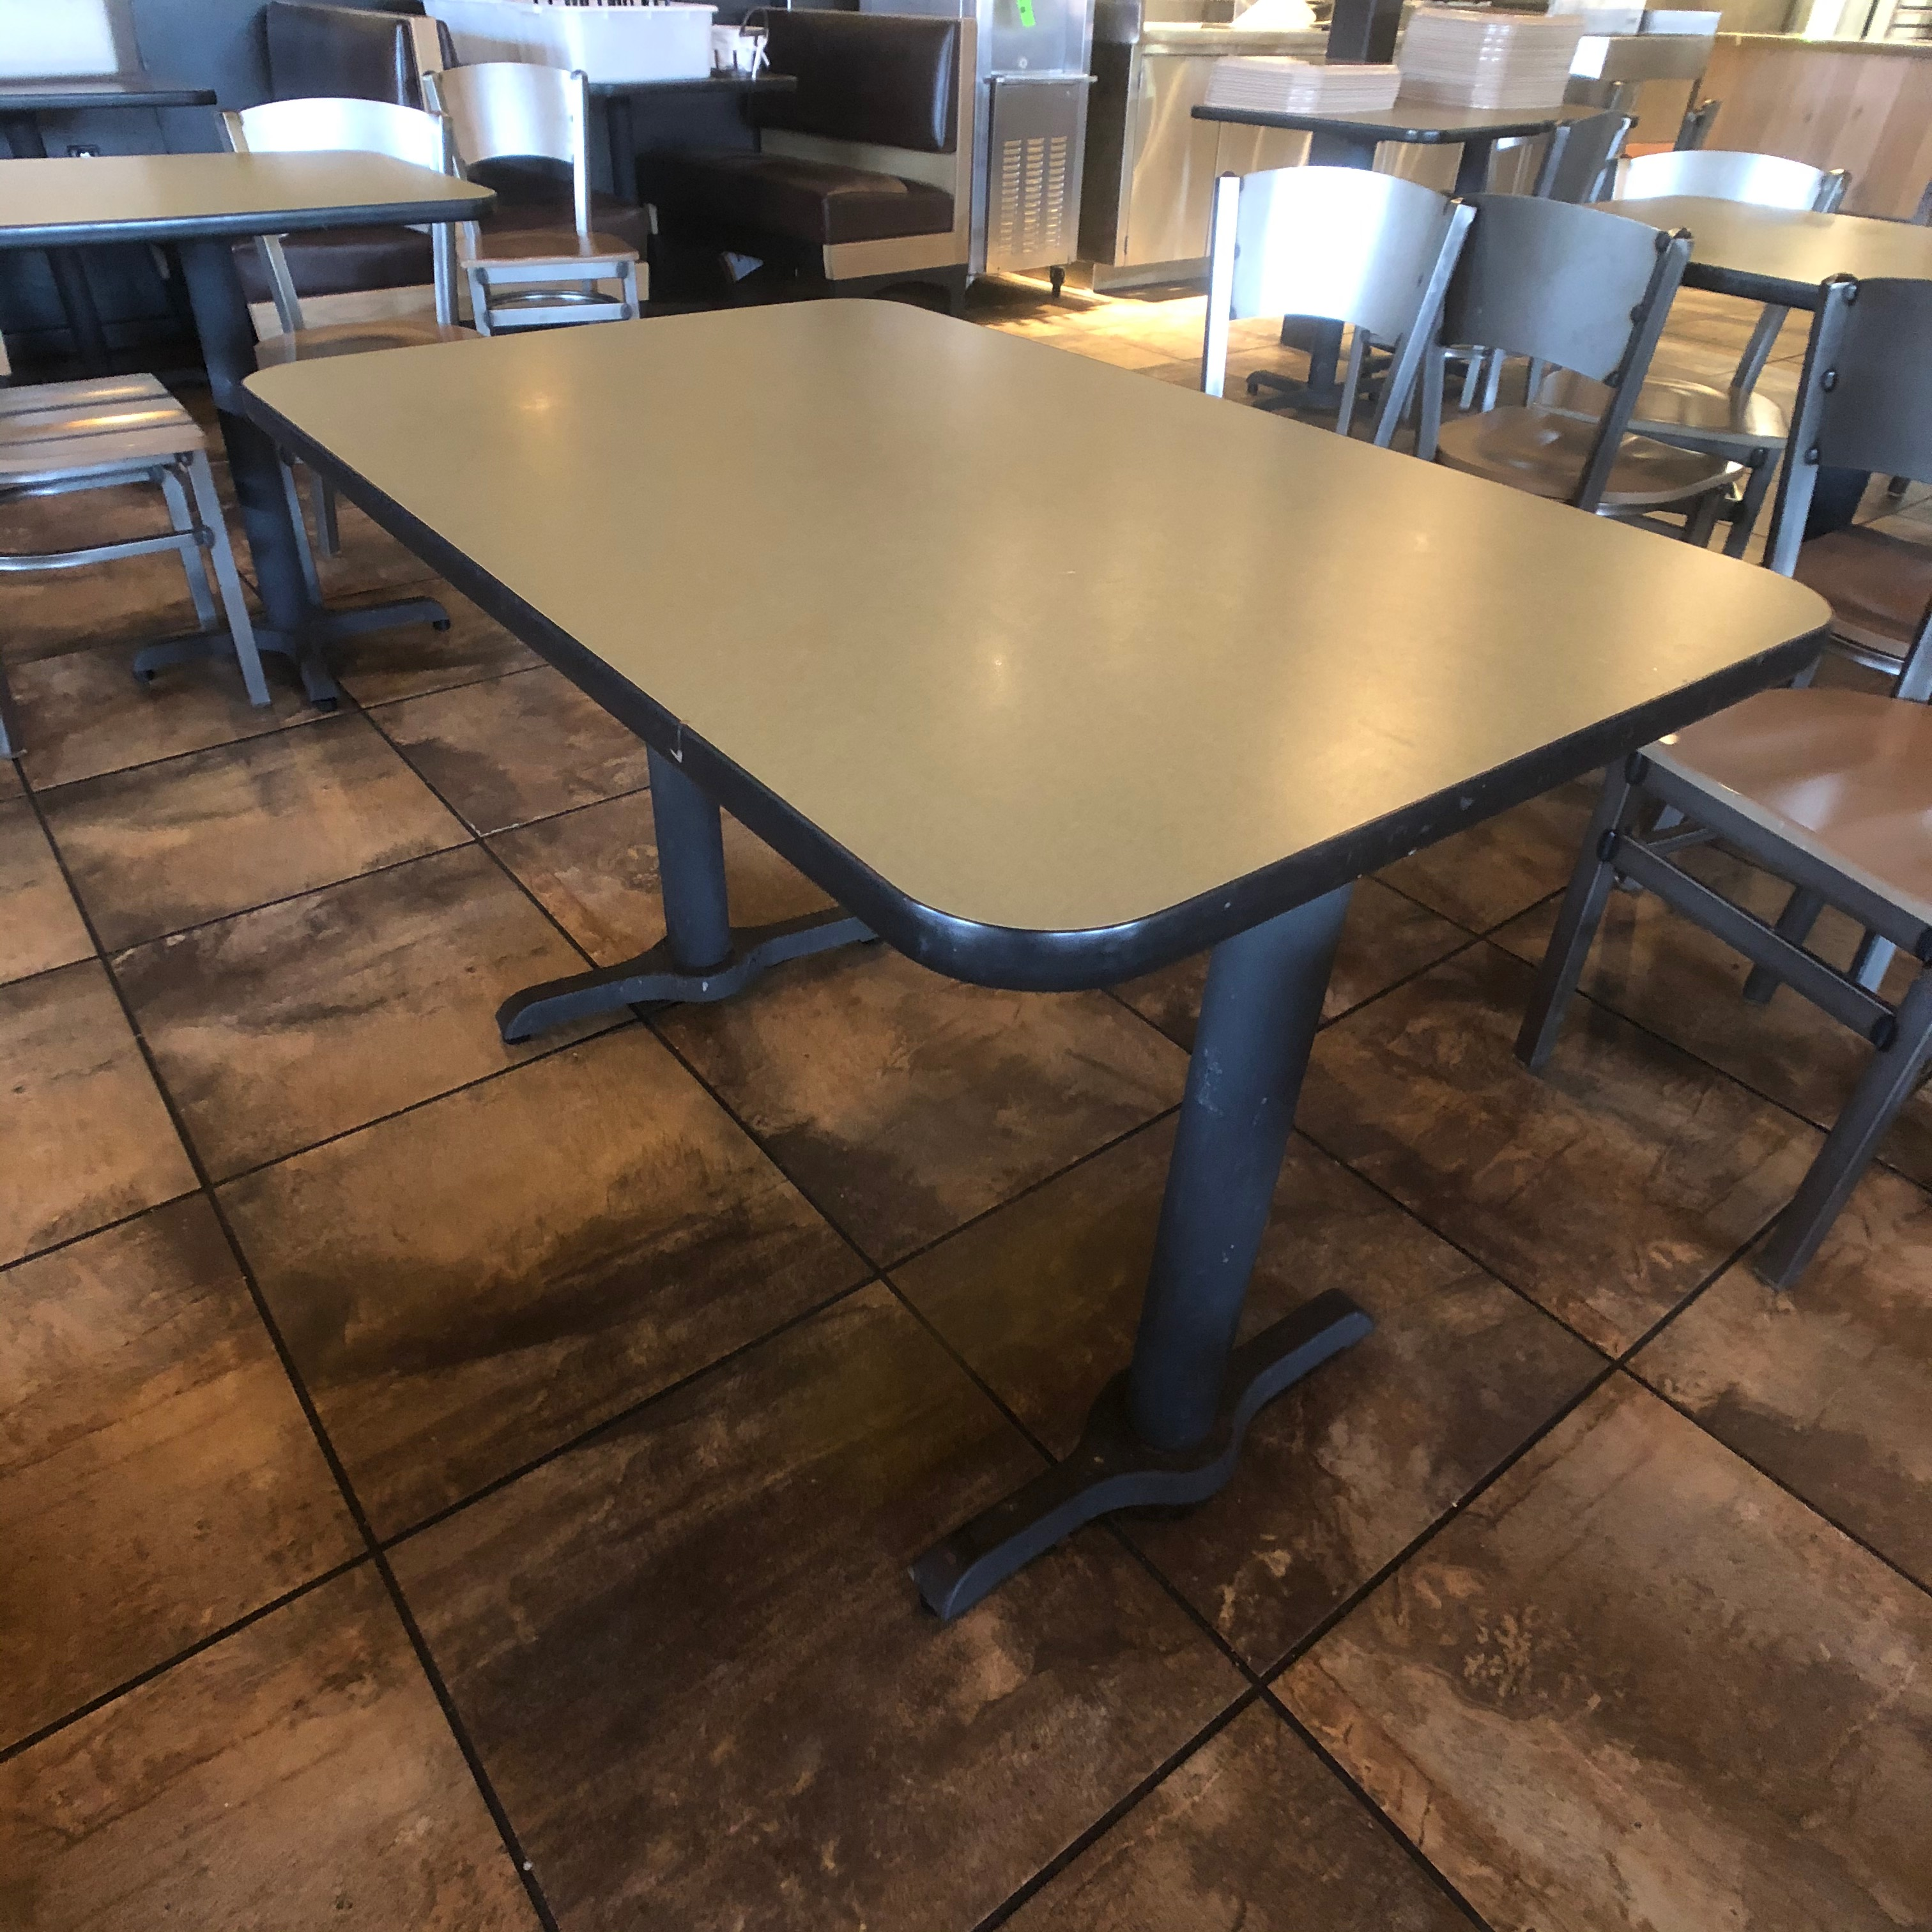 "(6) 4-Person Tables with (24) Walsh Simmons Seating Chairs, Approx. 44"" L x 28"" W - Image 2 of 5"